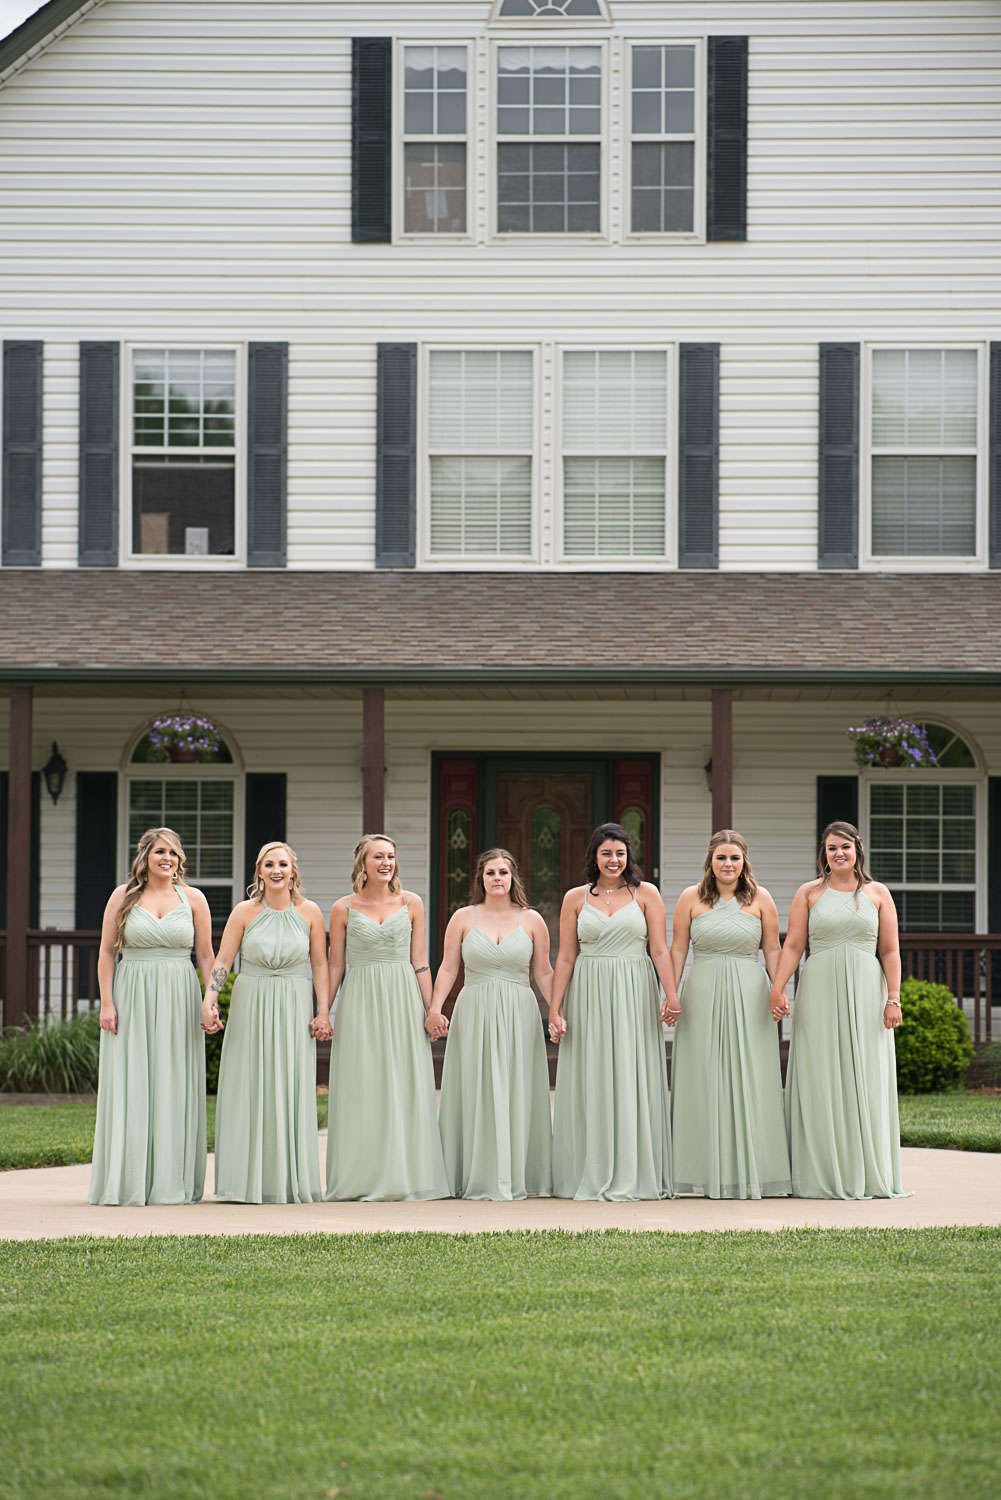 35 Austin Texas Bridal Party.jpg